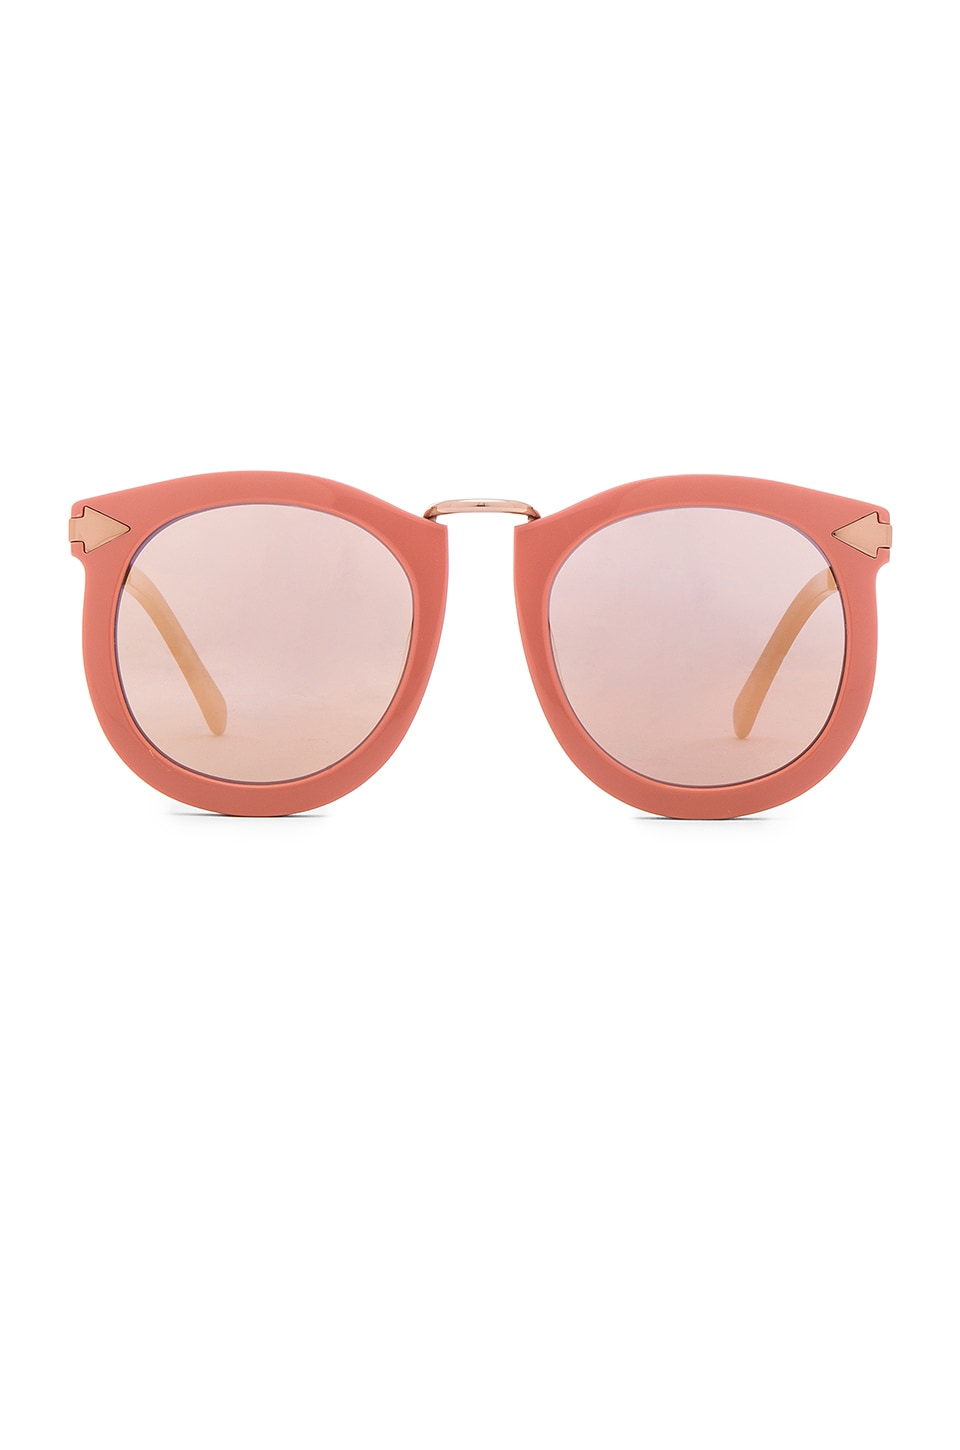 Karen Walker Super Lunar in Rose Pink & Shiny Gold